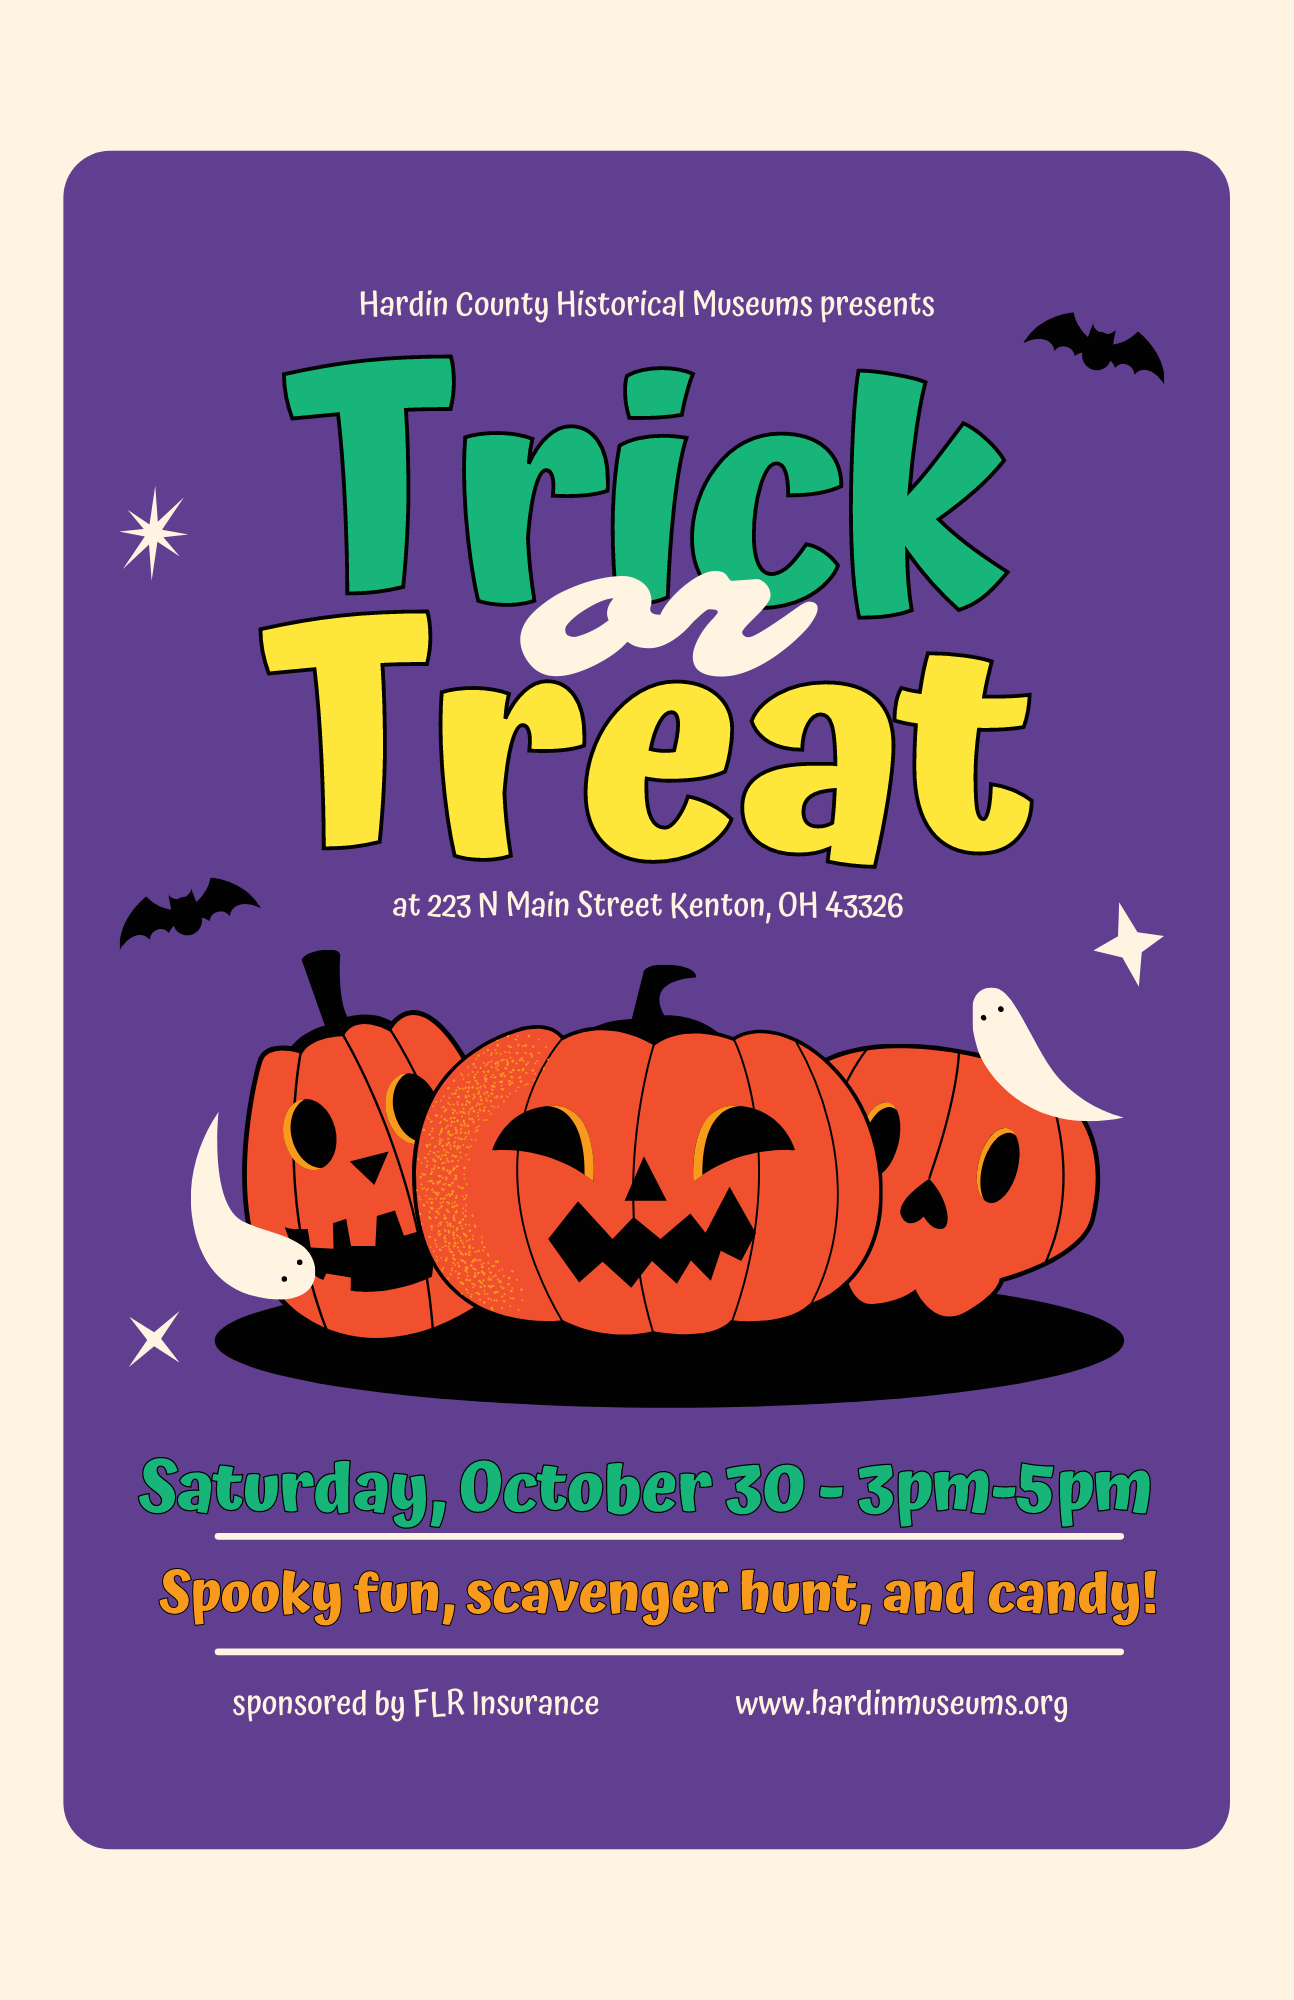 Hardin County Historical Museums Presents Trick or Treat